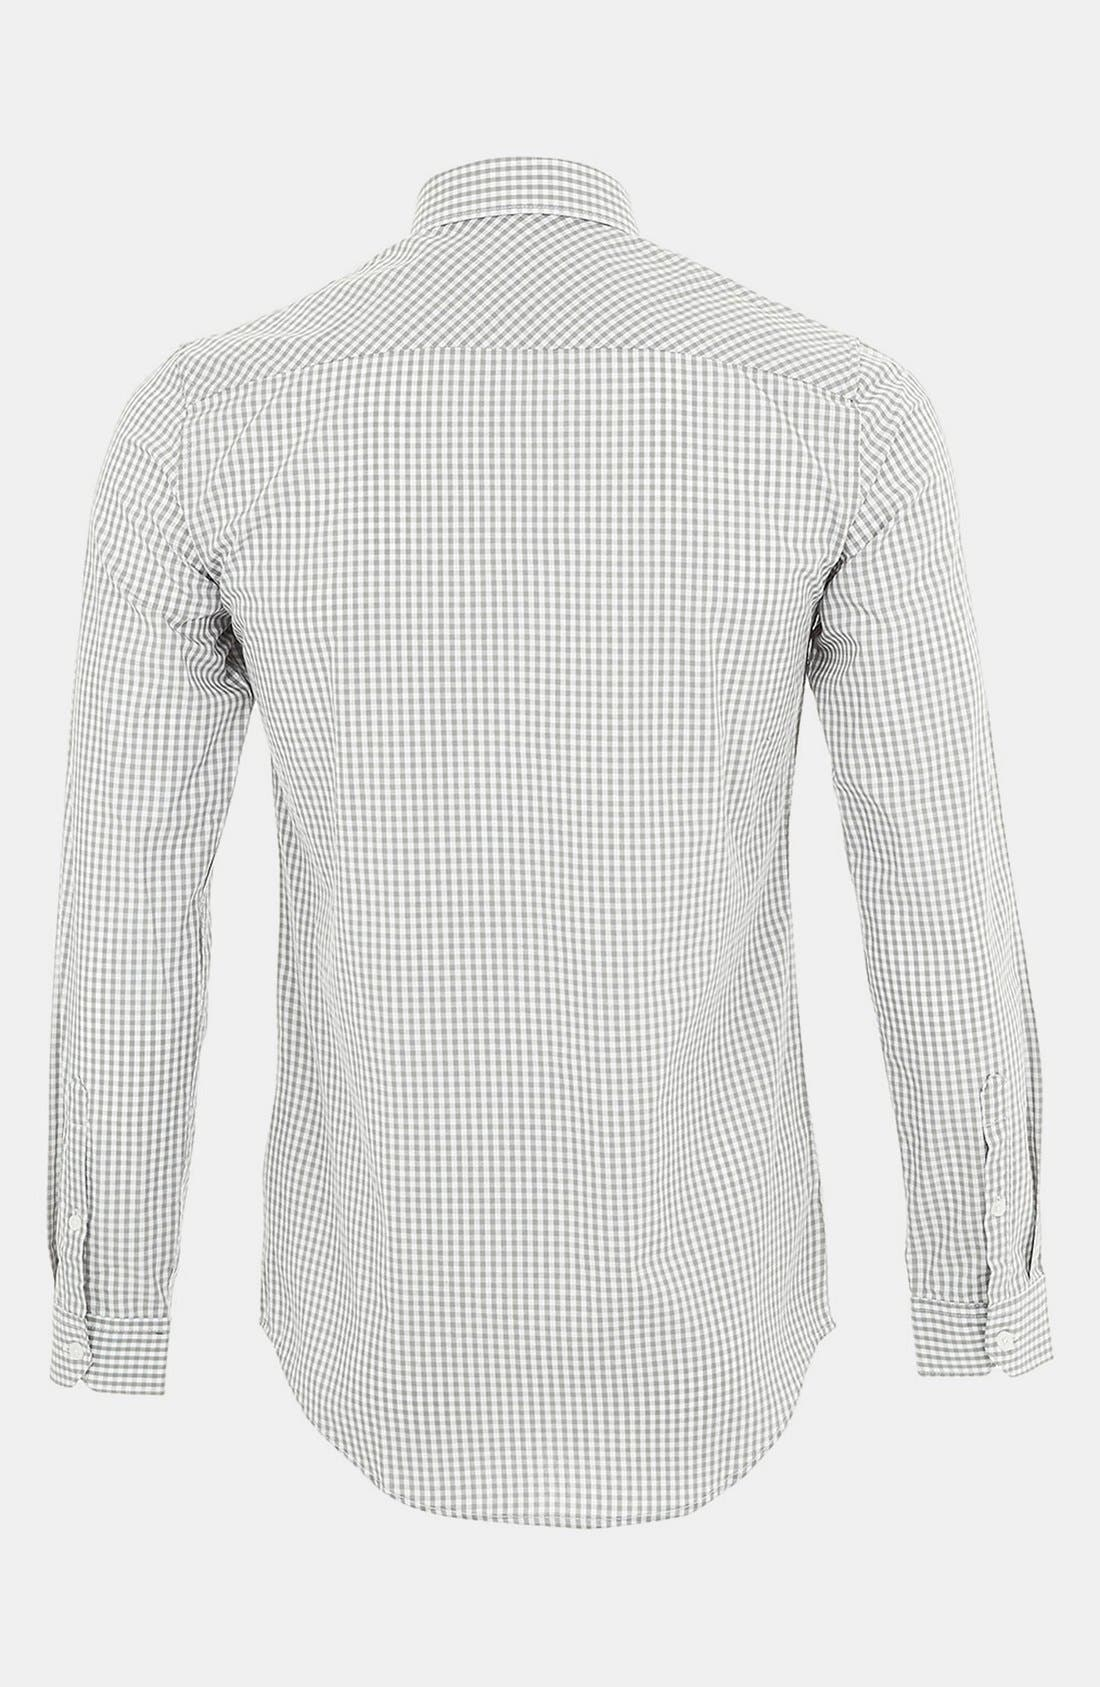 Alternate Image 2  - Topman Gingham Check Shirt